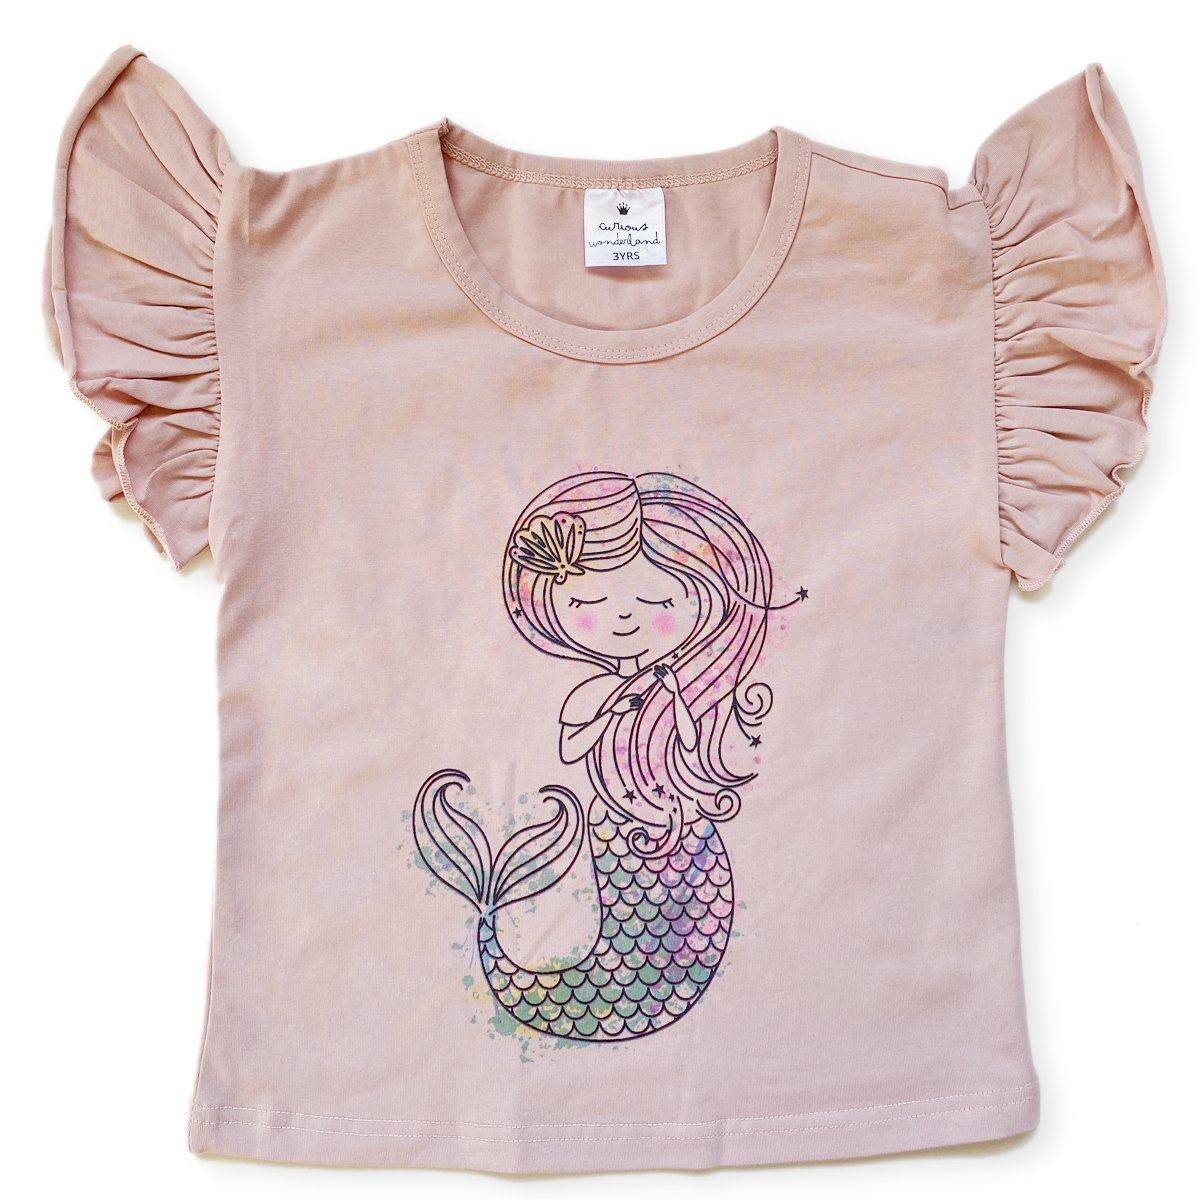 Mermaid Flutter Tee